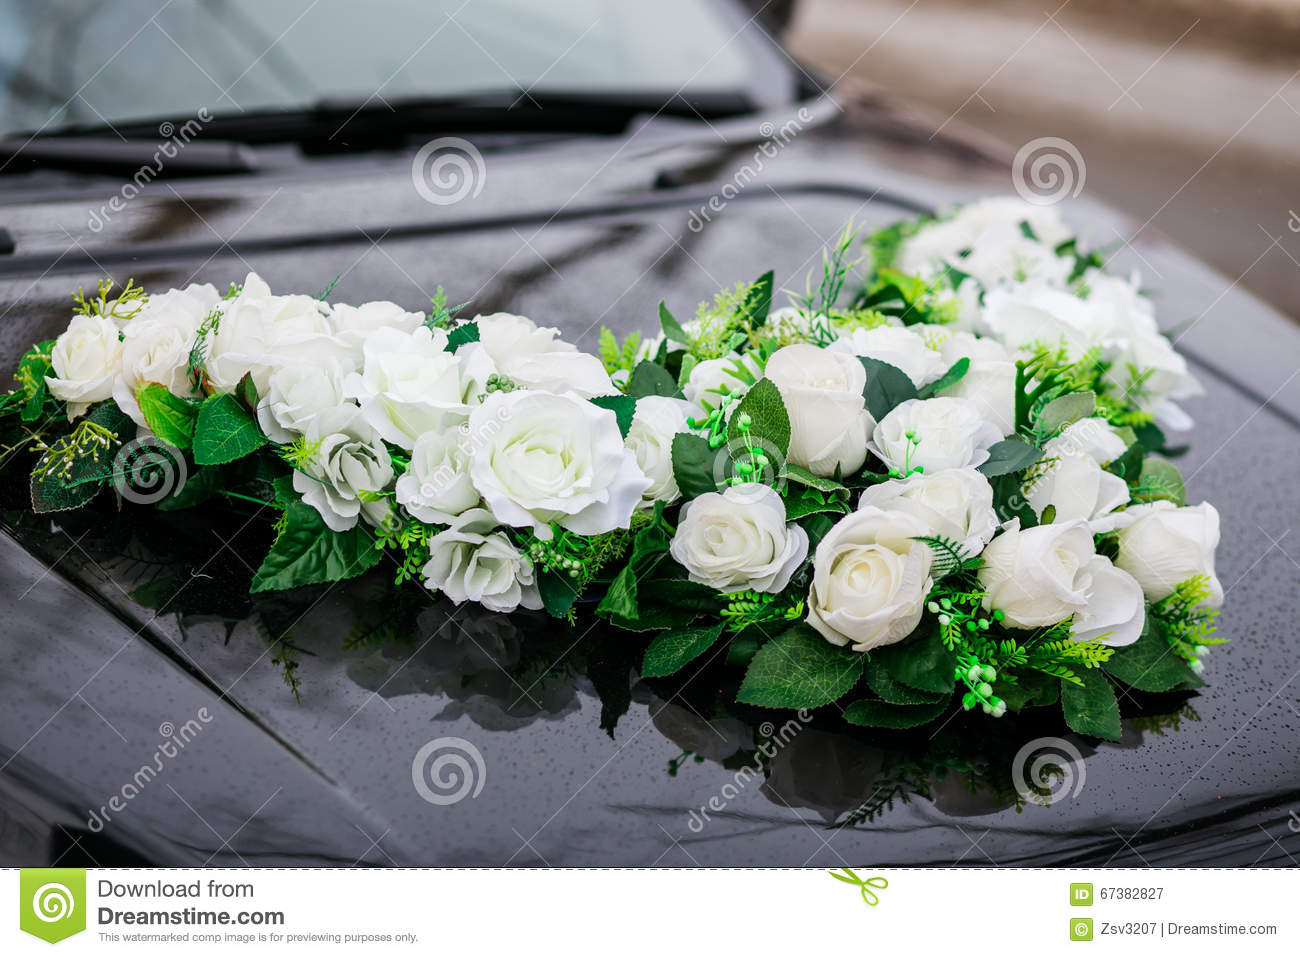 Wedding decorations for car flowers white roses stock for Decoration avec des roses